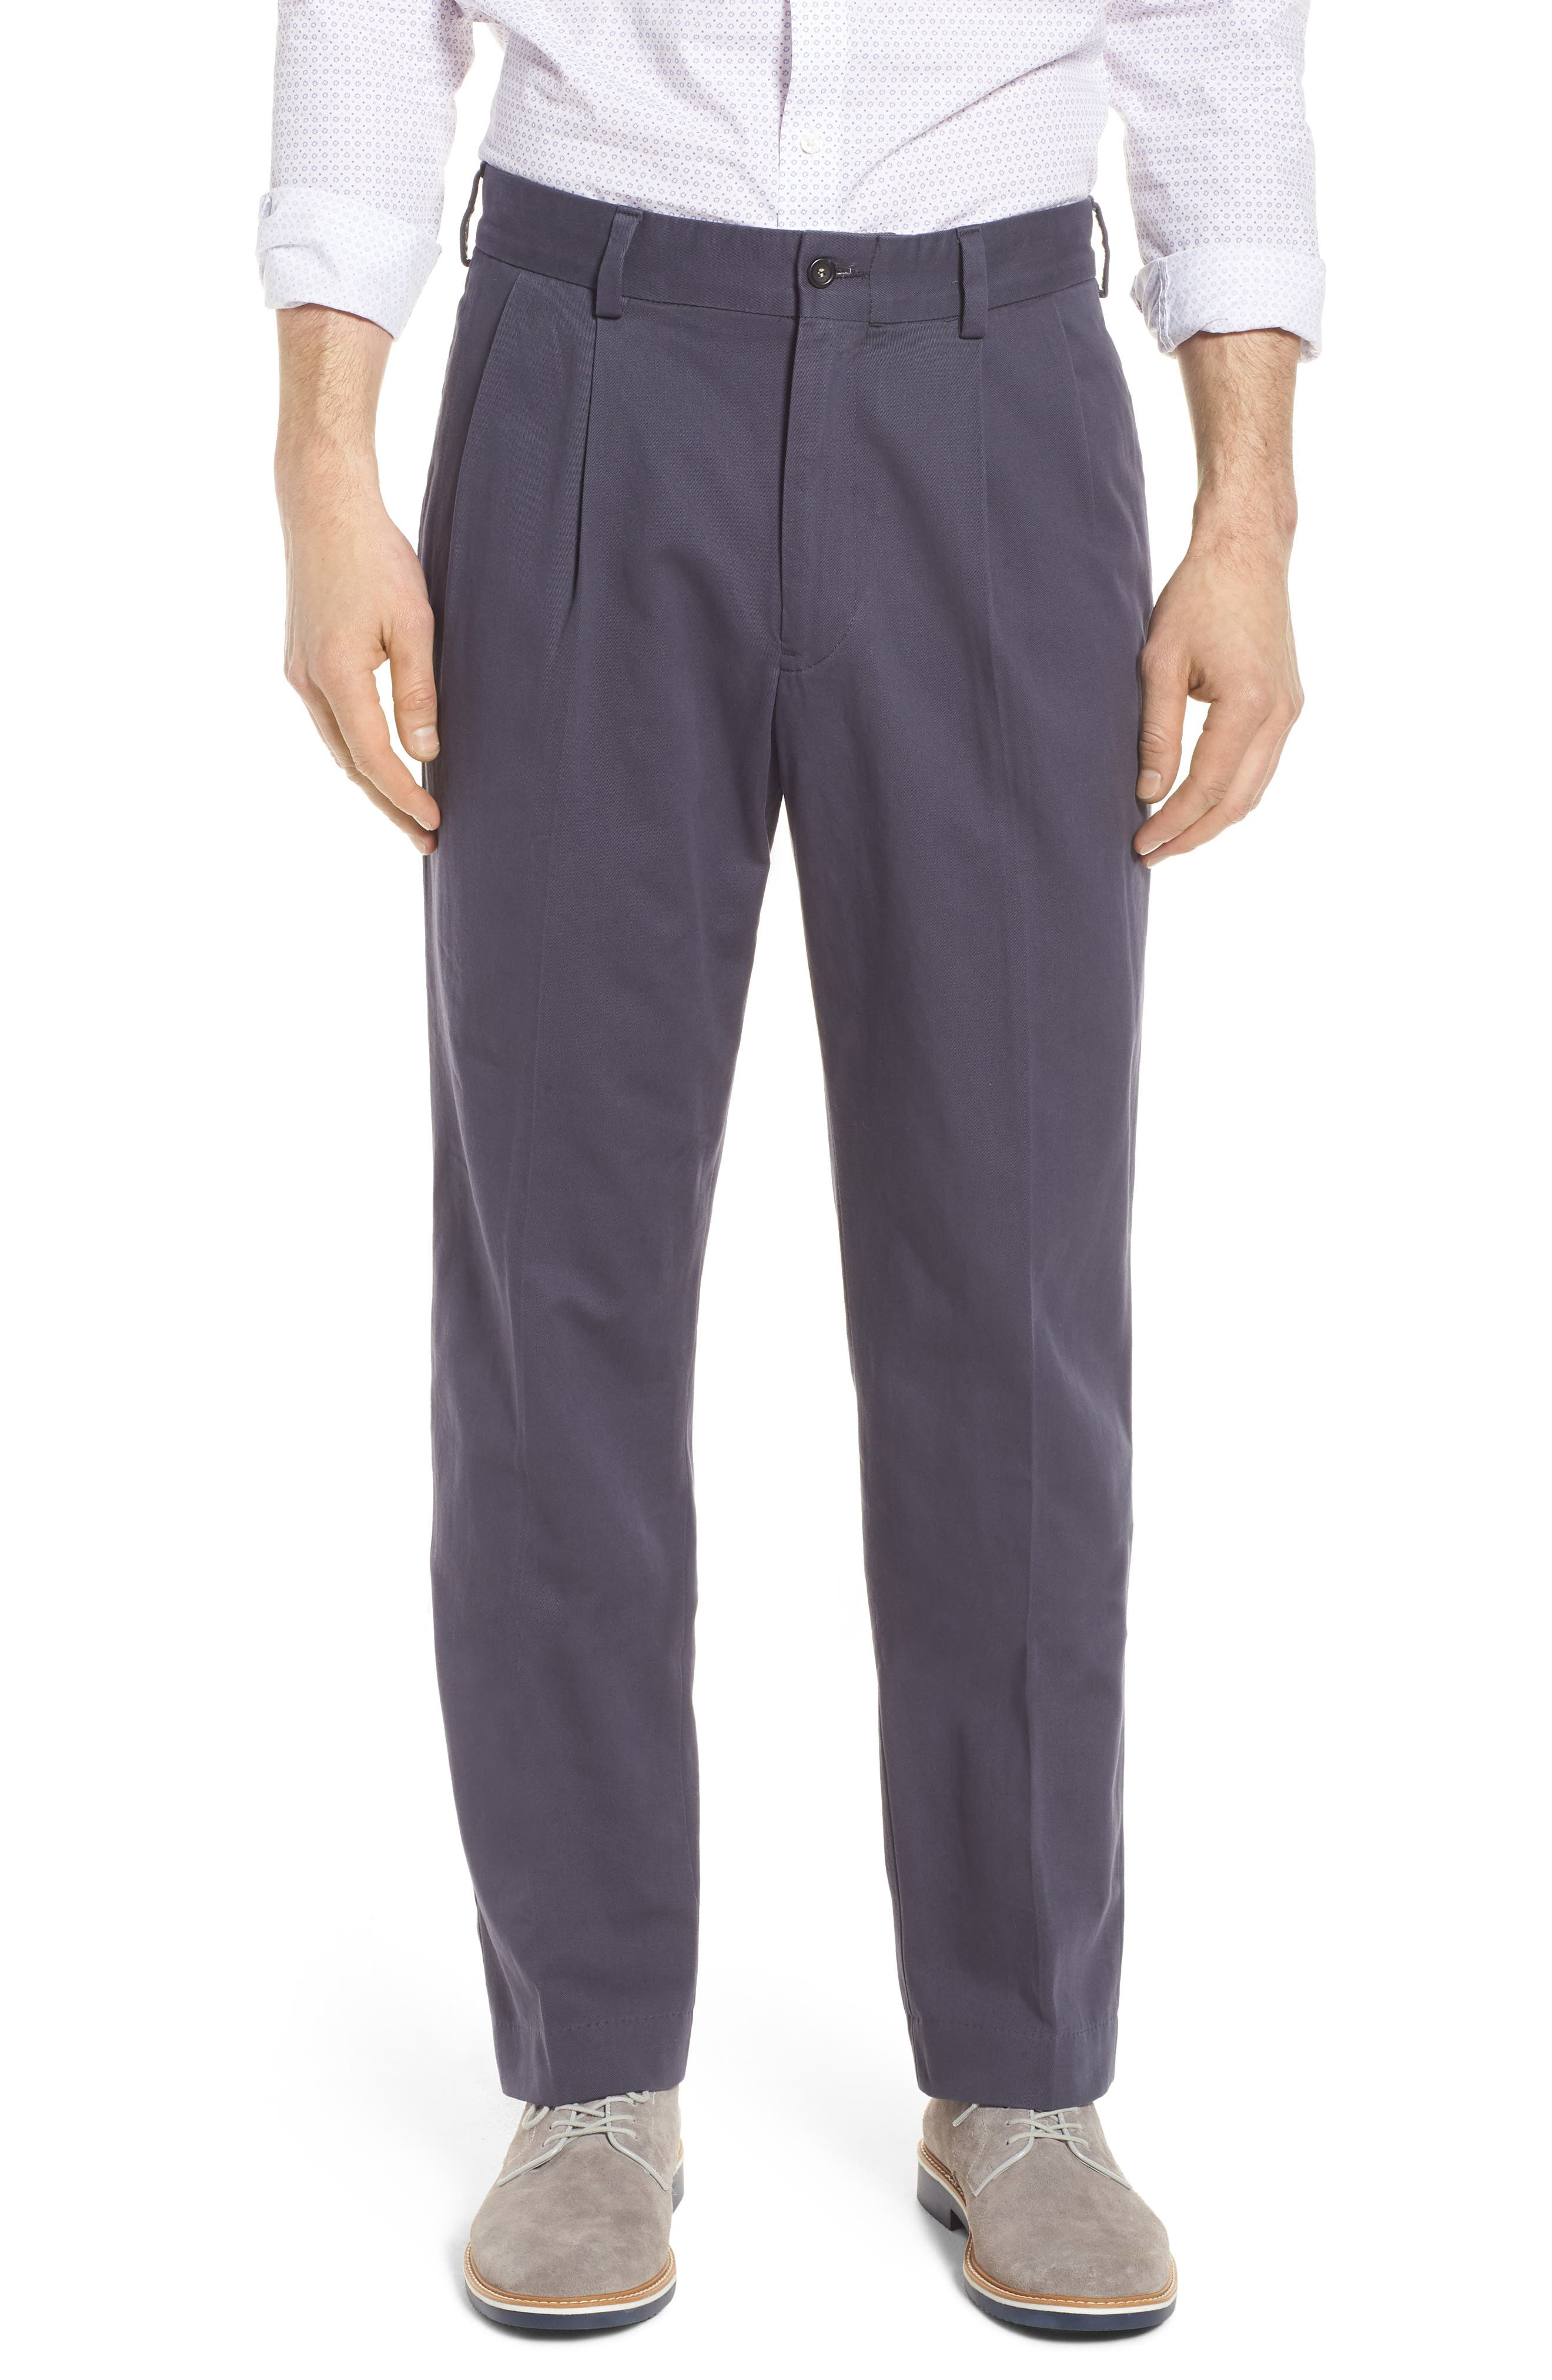 M2 Classic Fit Vintage Twill Pleated Pants,                             Main thumbnail 1, color,                             410